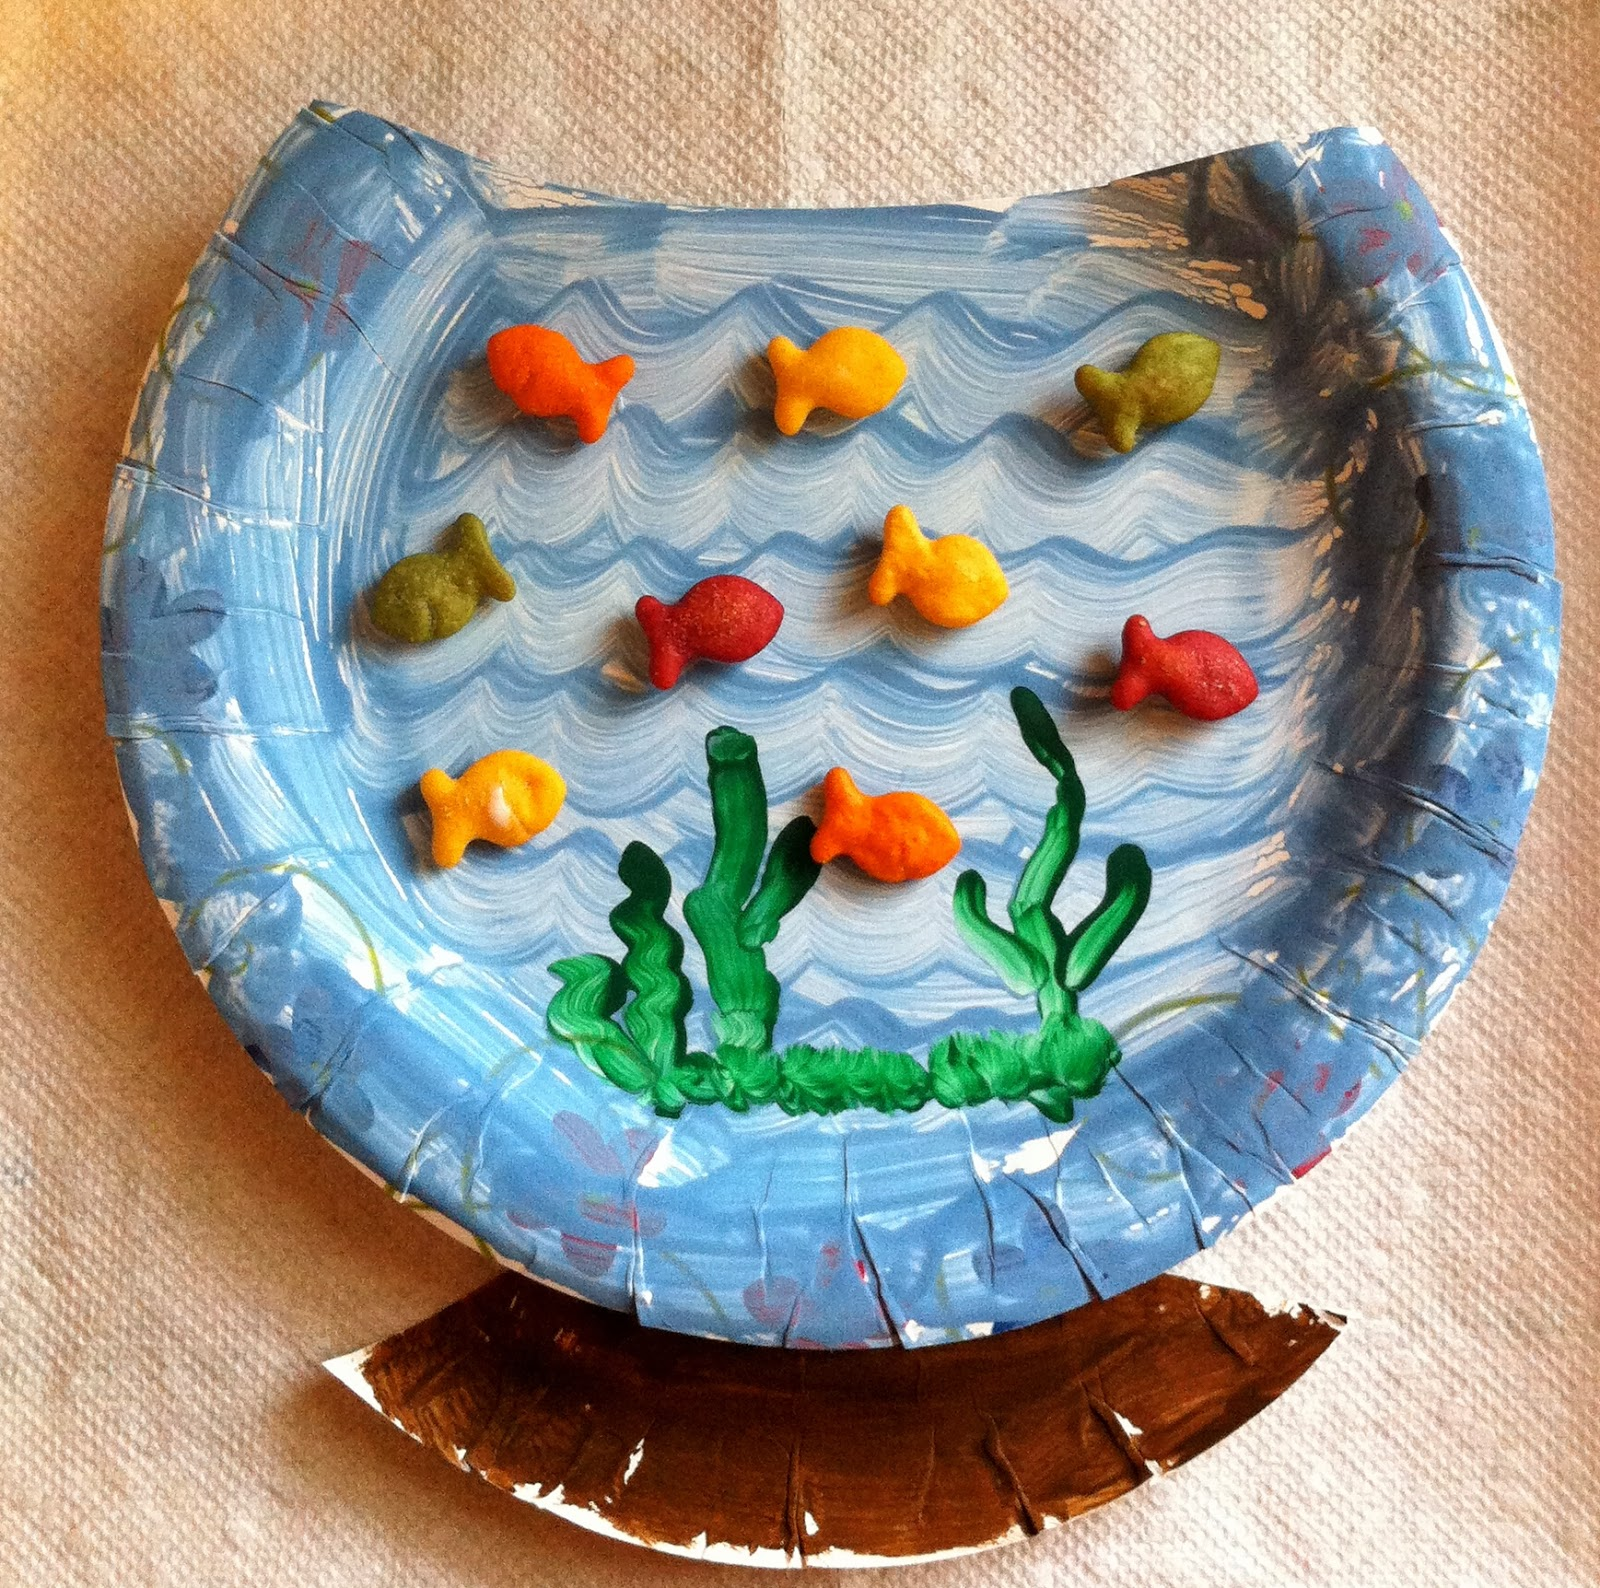 Paper plate and goldfish cracker fish bowl